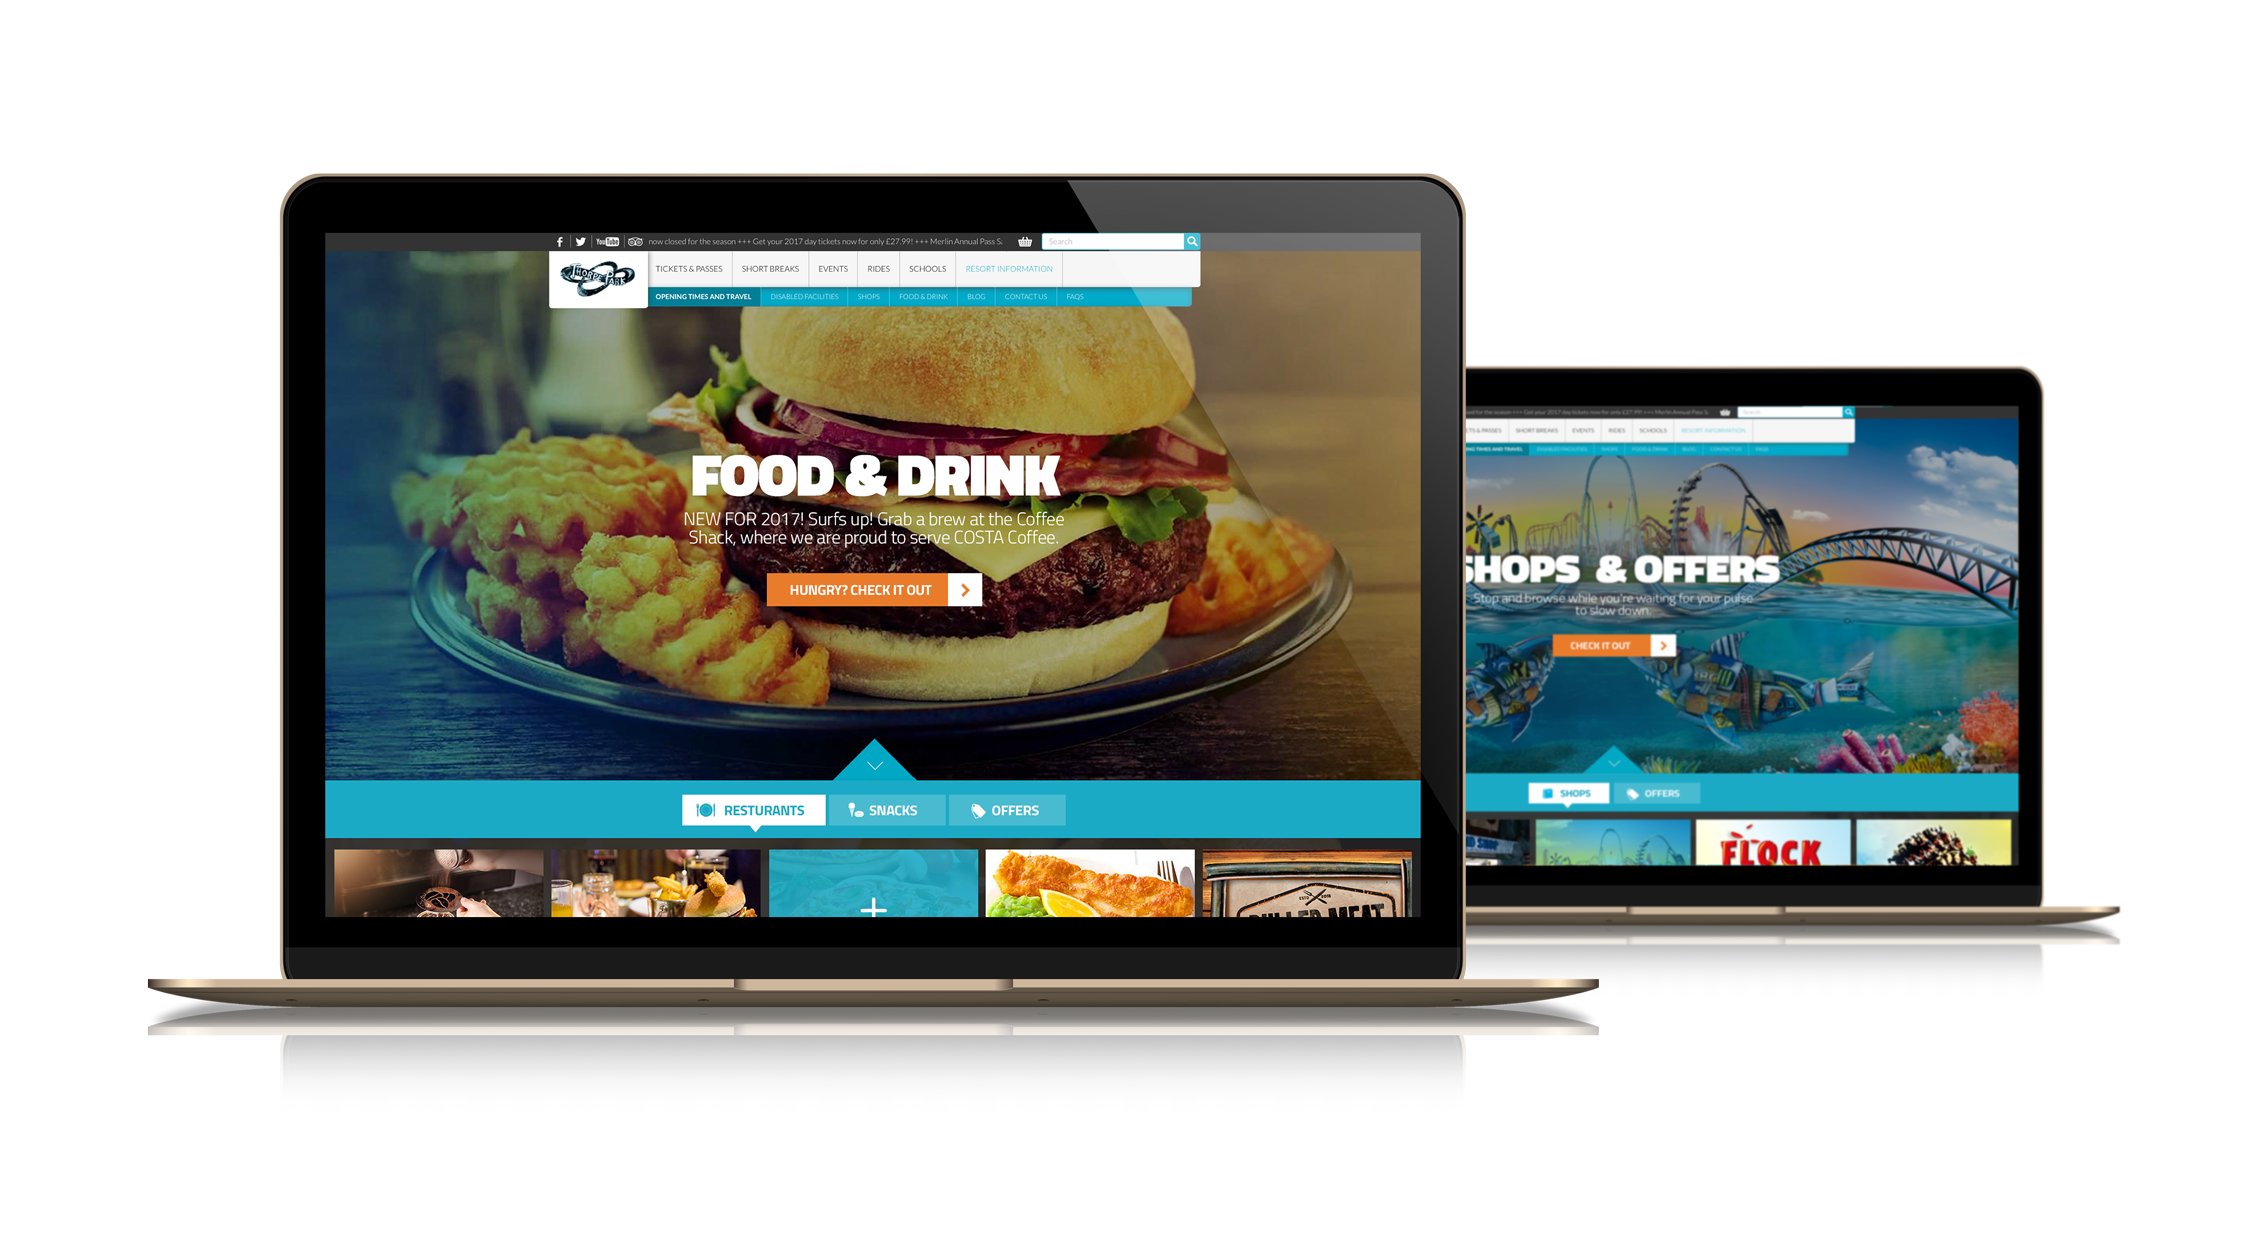 Thorpe Park Website